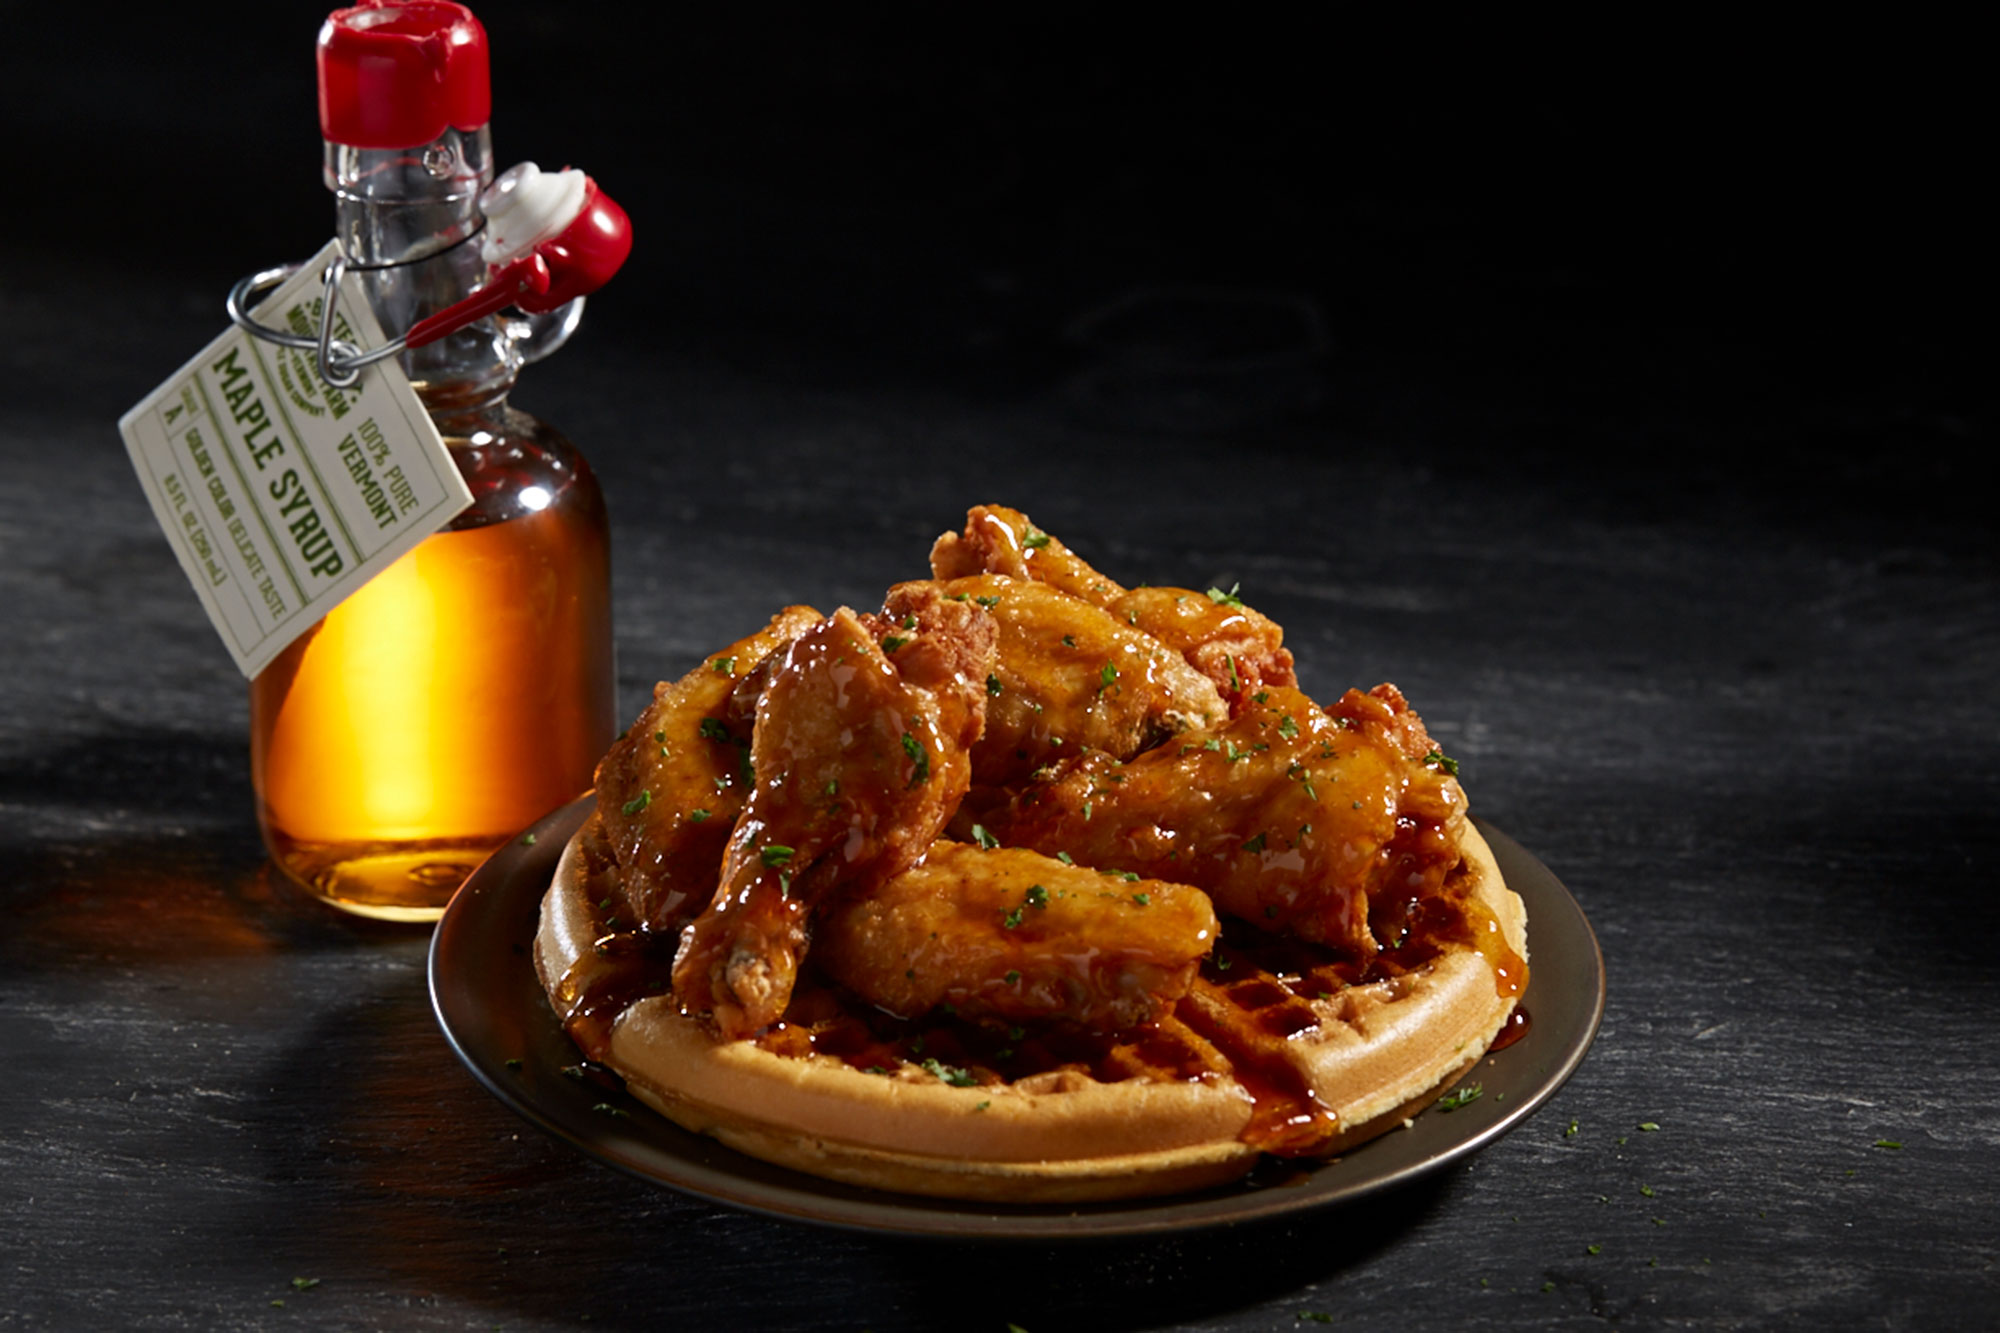 Nathans wings and waffles delivery